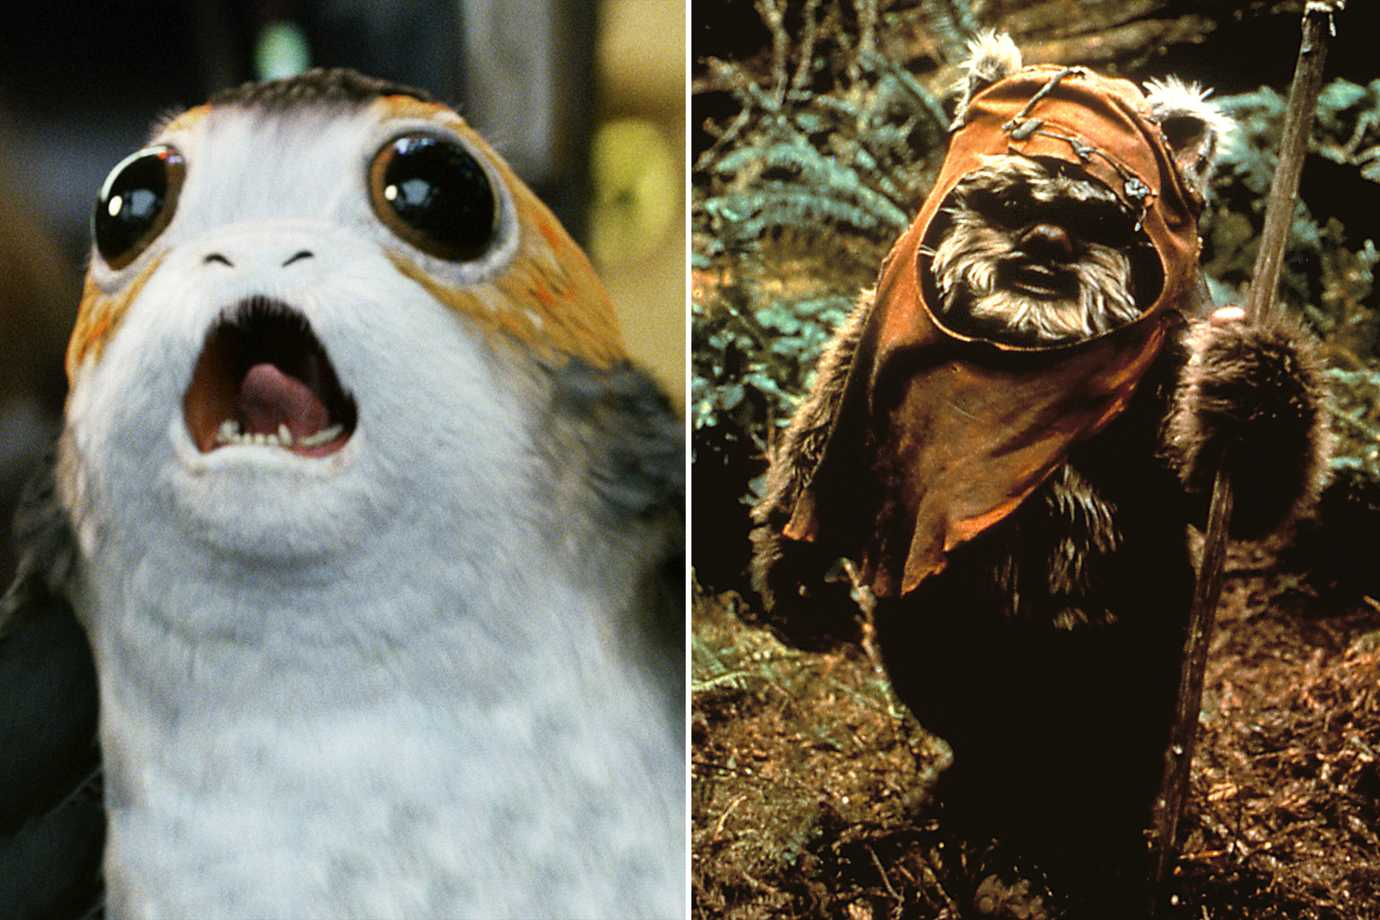 Picture of a porg, and ewok, from Star Wars